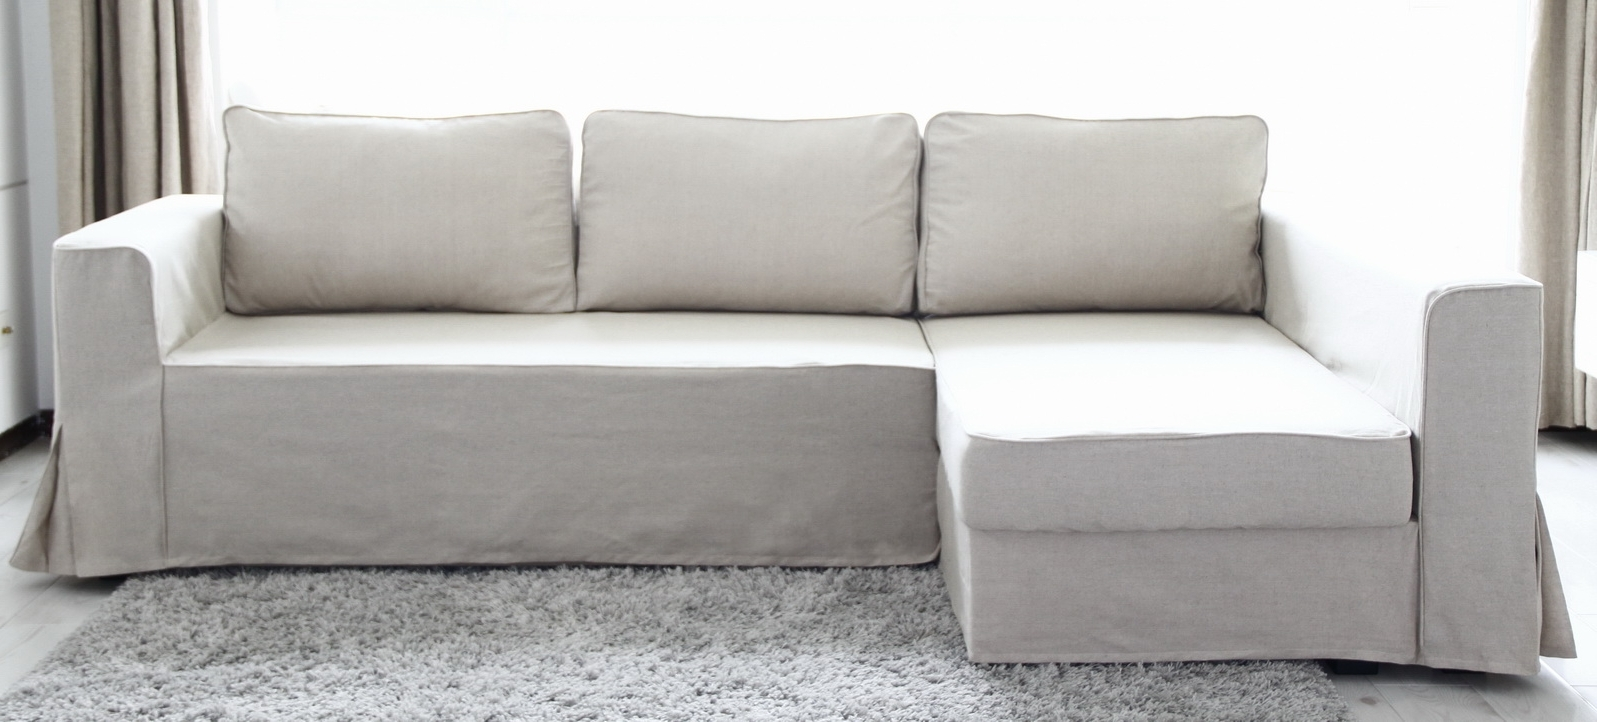 Loose Fit Linen Manstad Sofa Slipcovers Now Available Throughout Best And Newest Karlstad Chaise Covers (View 11 of 15)